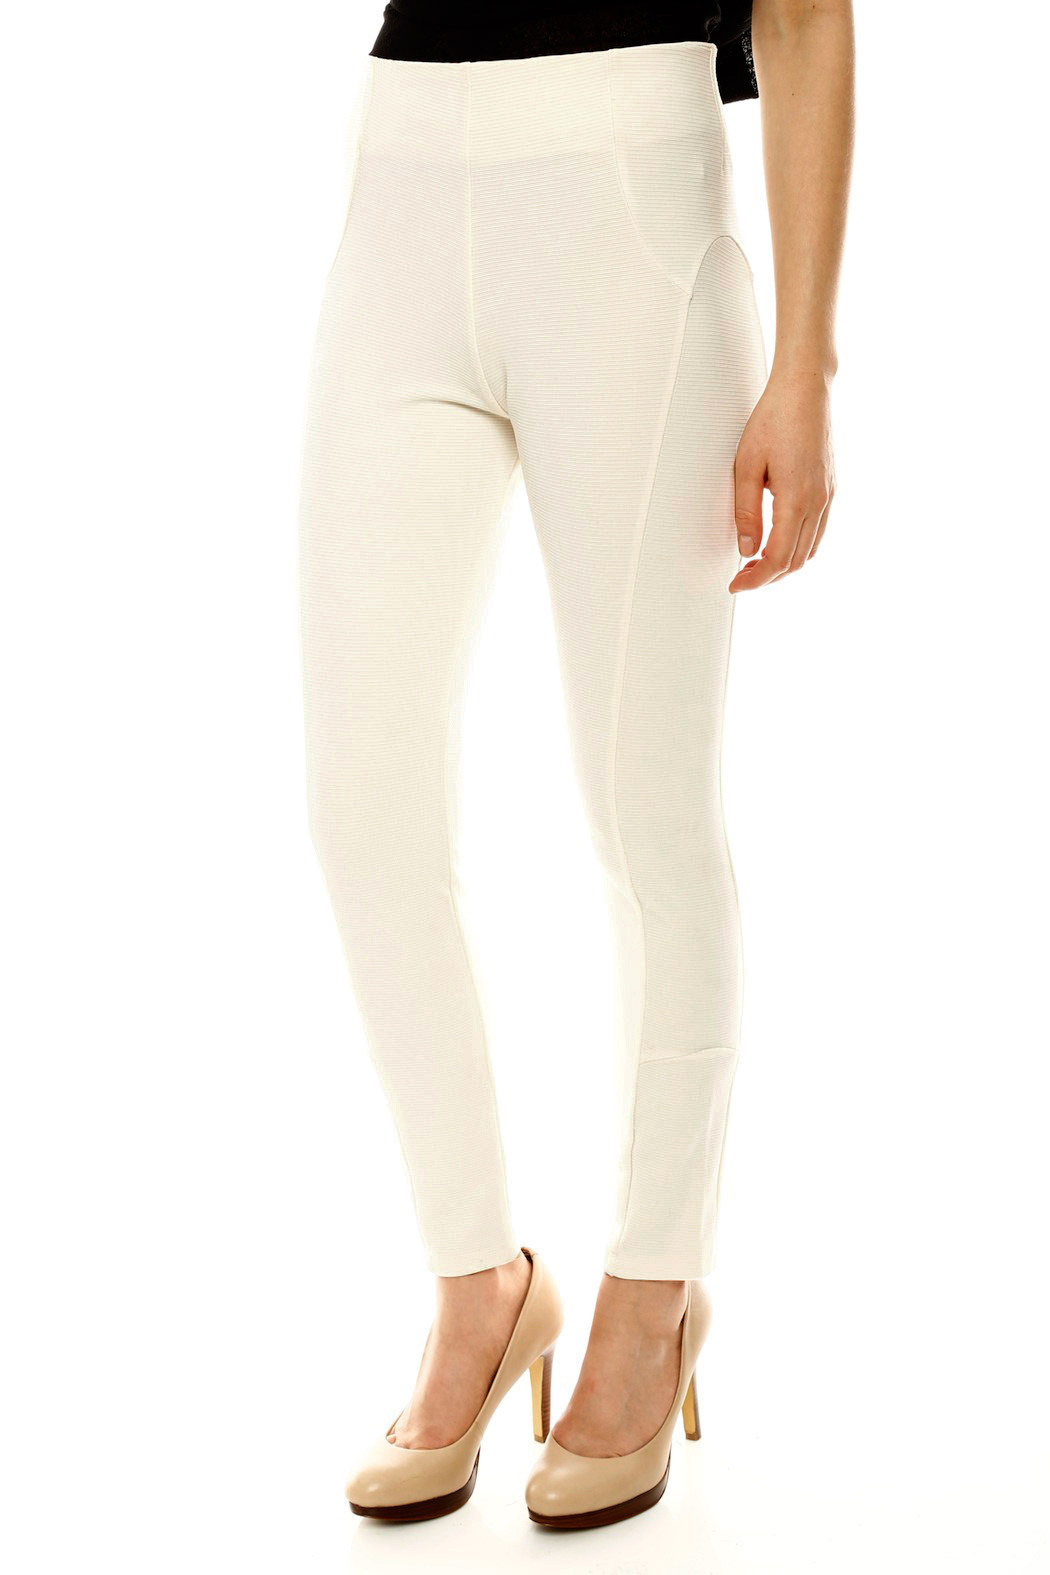 Gracia Ribbed Riding Pant - Side Cropped Image